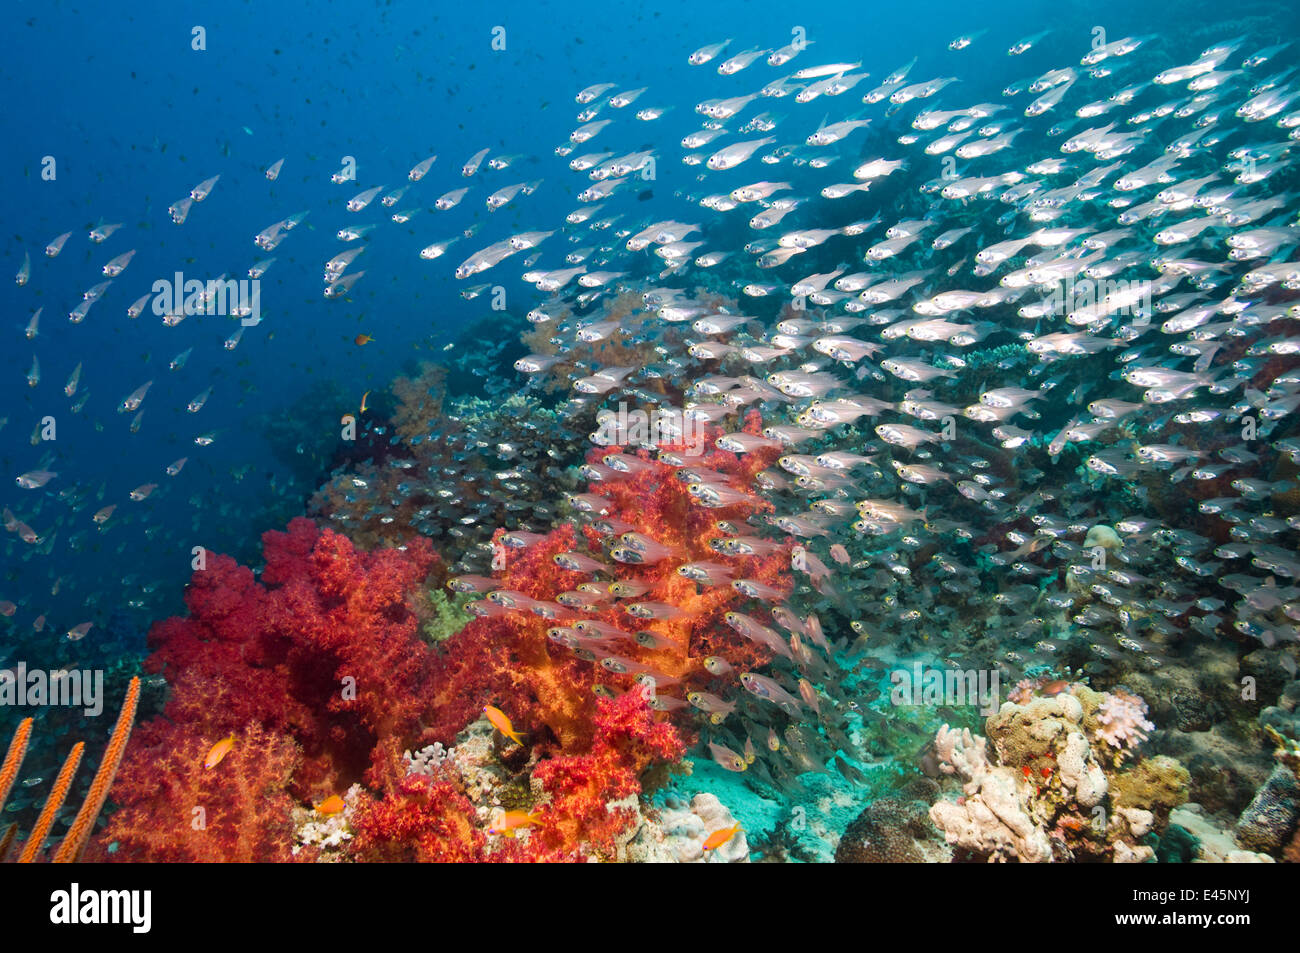 Coral reef scenery with Gorgonian and shoal of Pygmy / Glassy sweepers (Parapriacanthus guentheri) Egypt, Red Sea - Stock Image